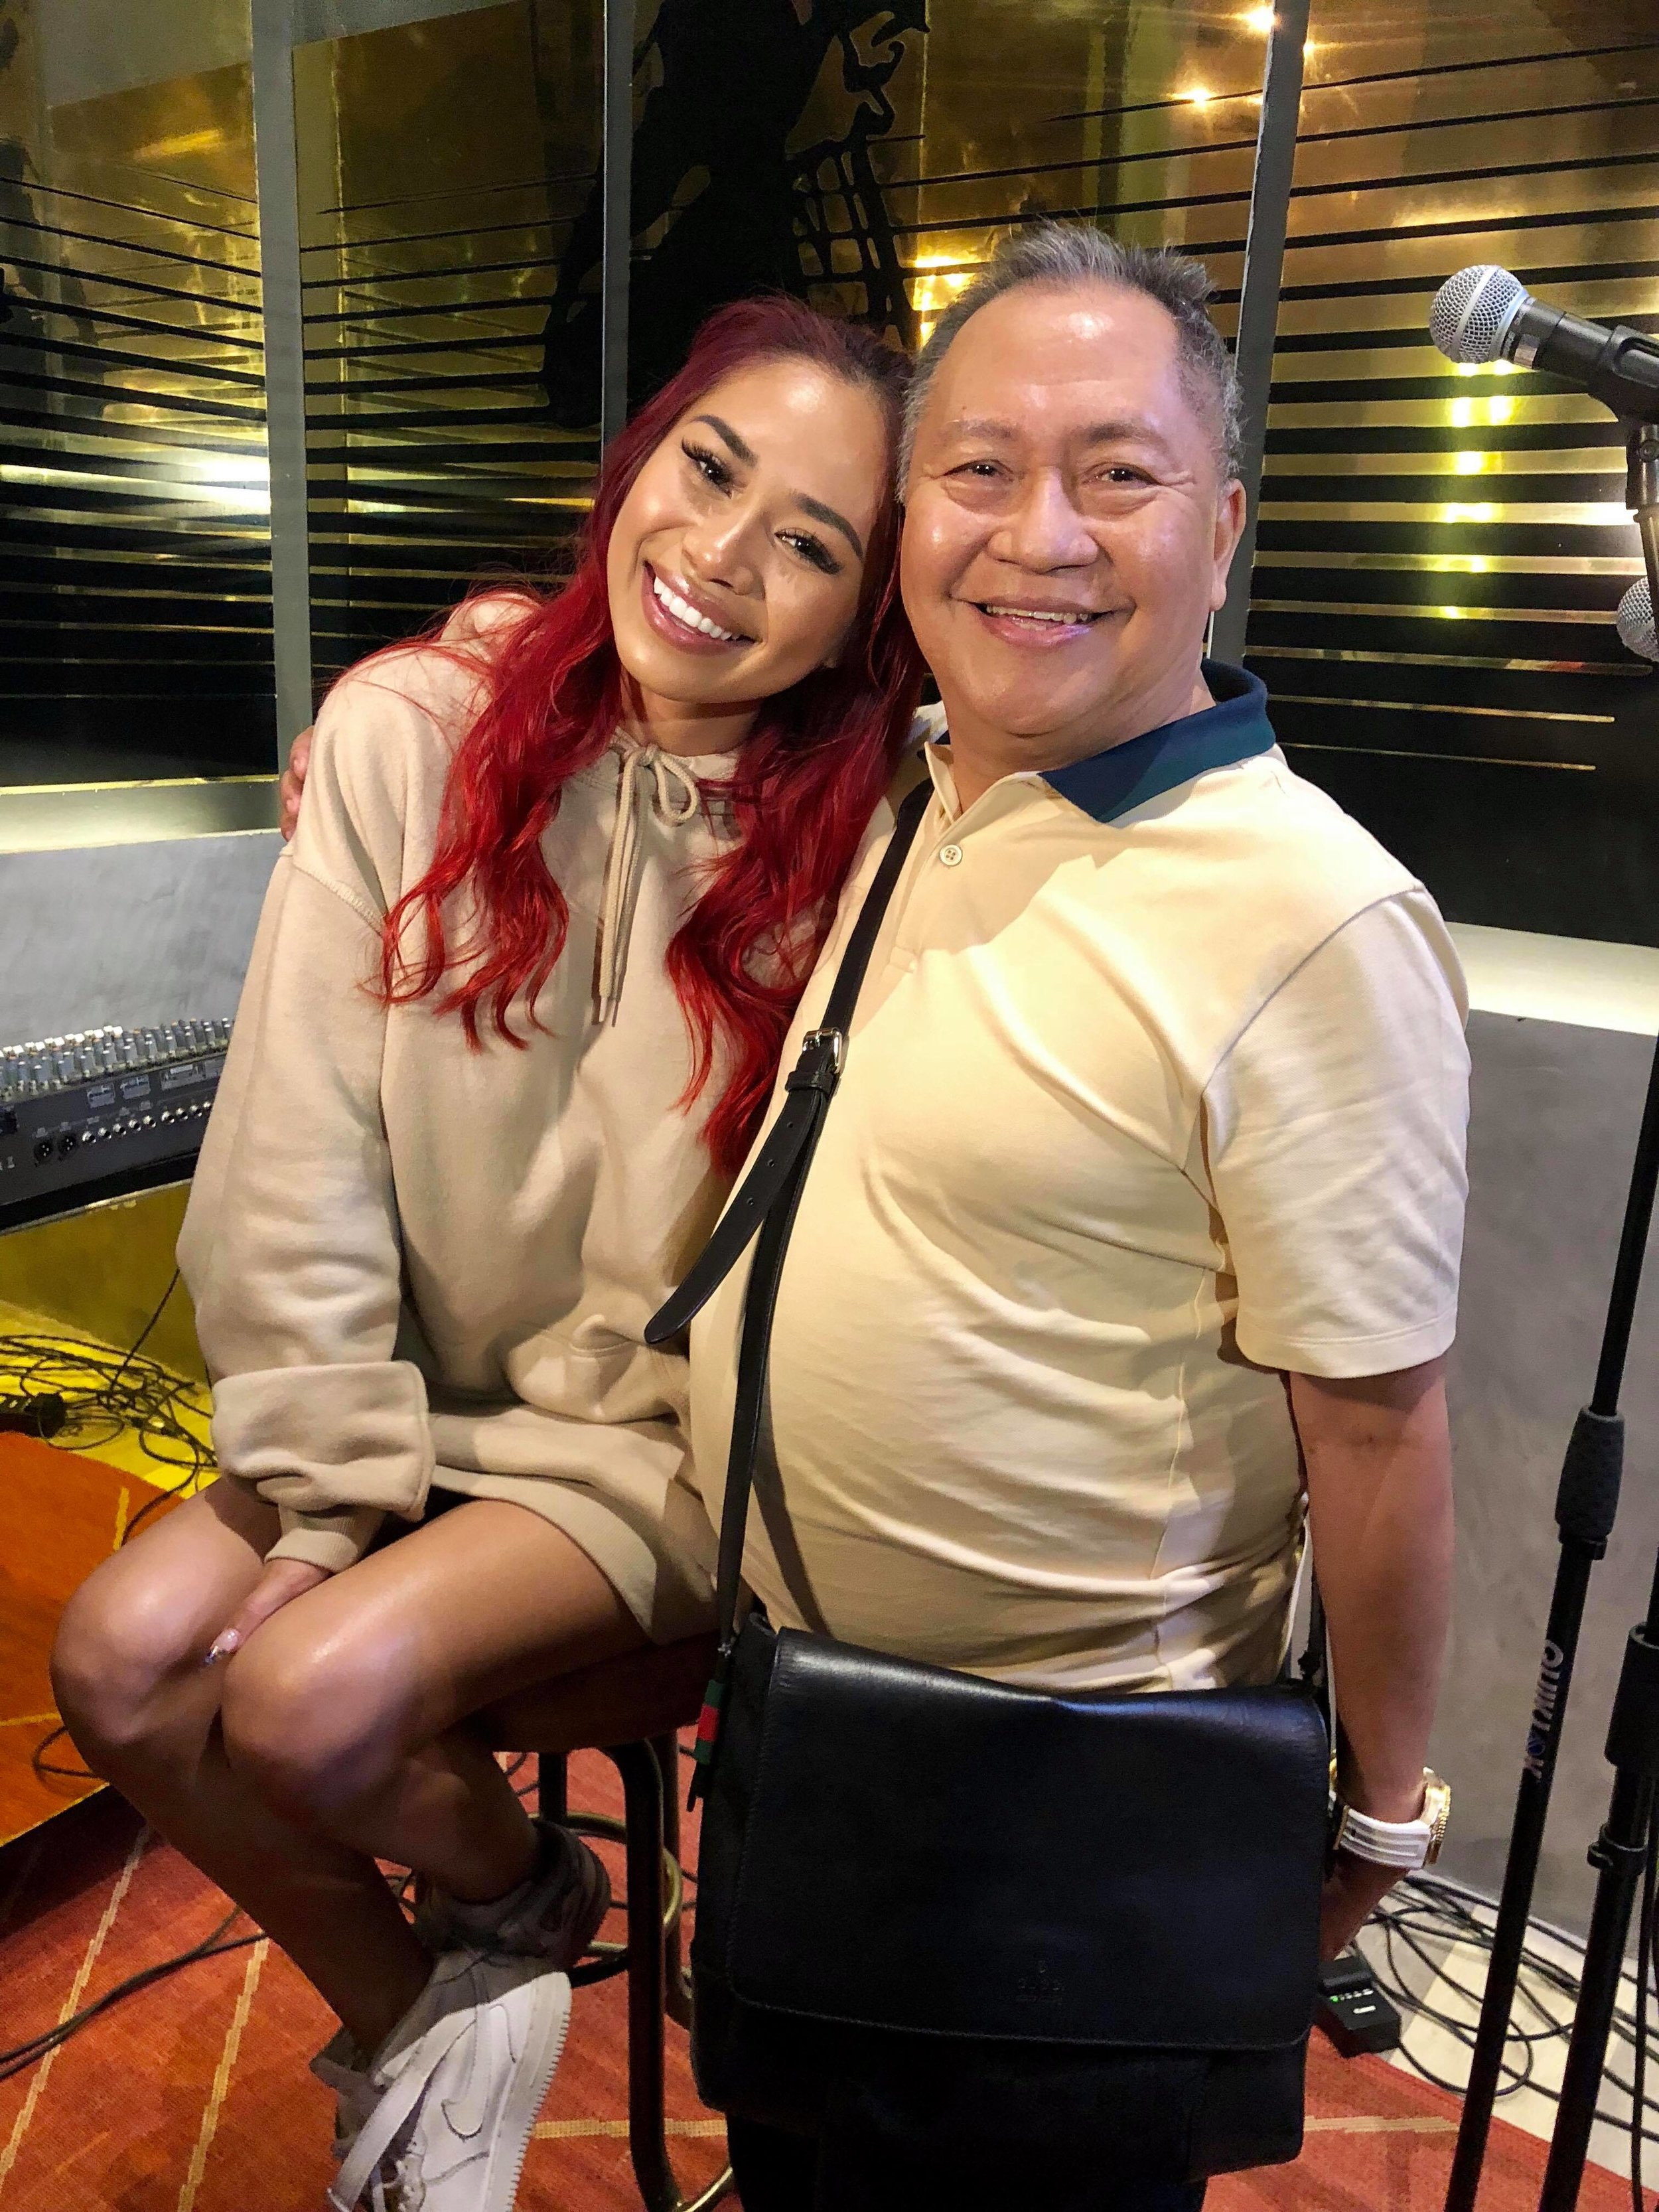 Jessica Sanchez with Isah Red at Studio 28 during her brief press meet